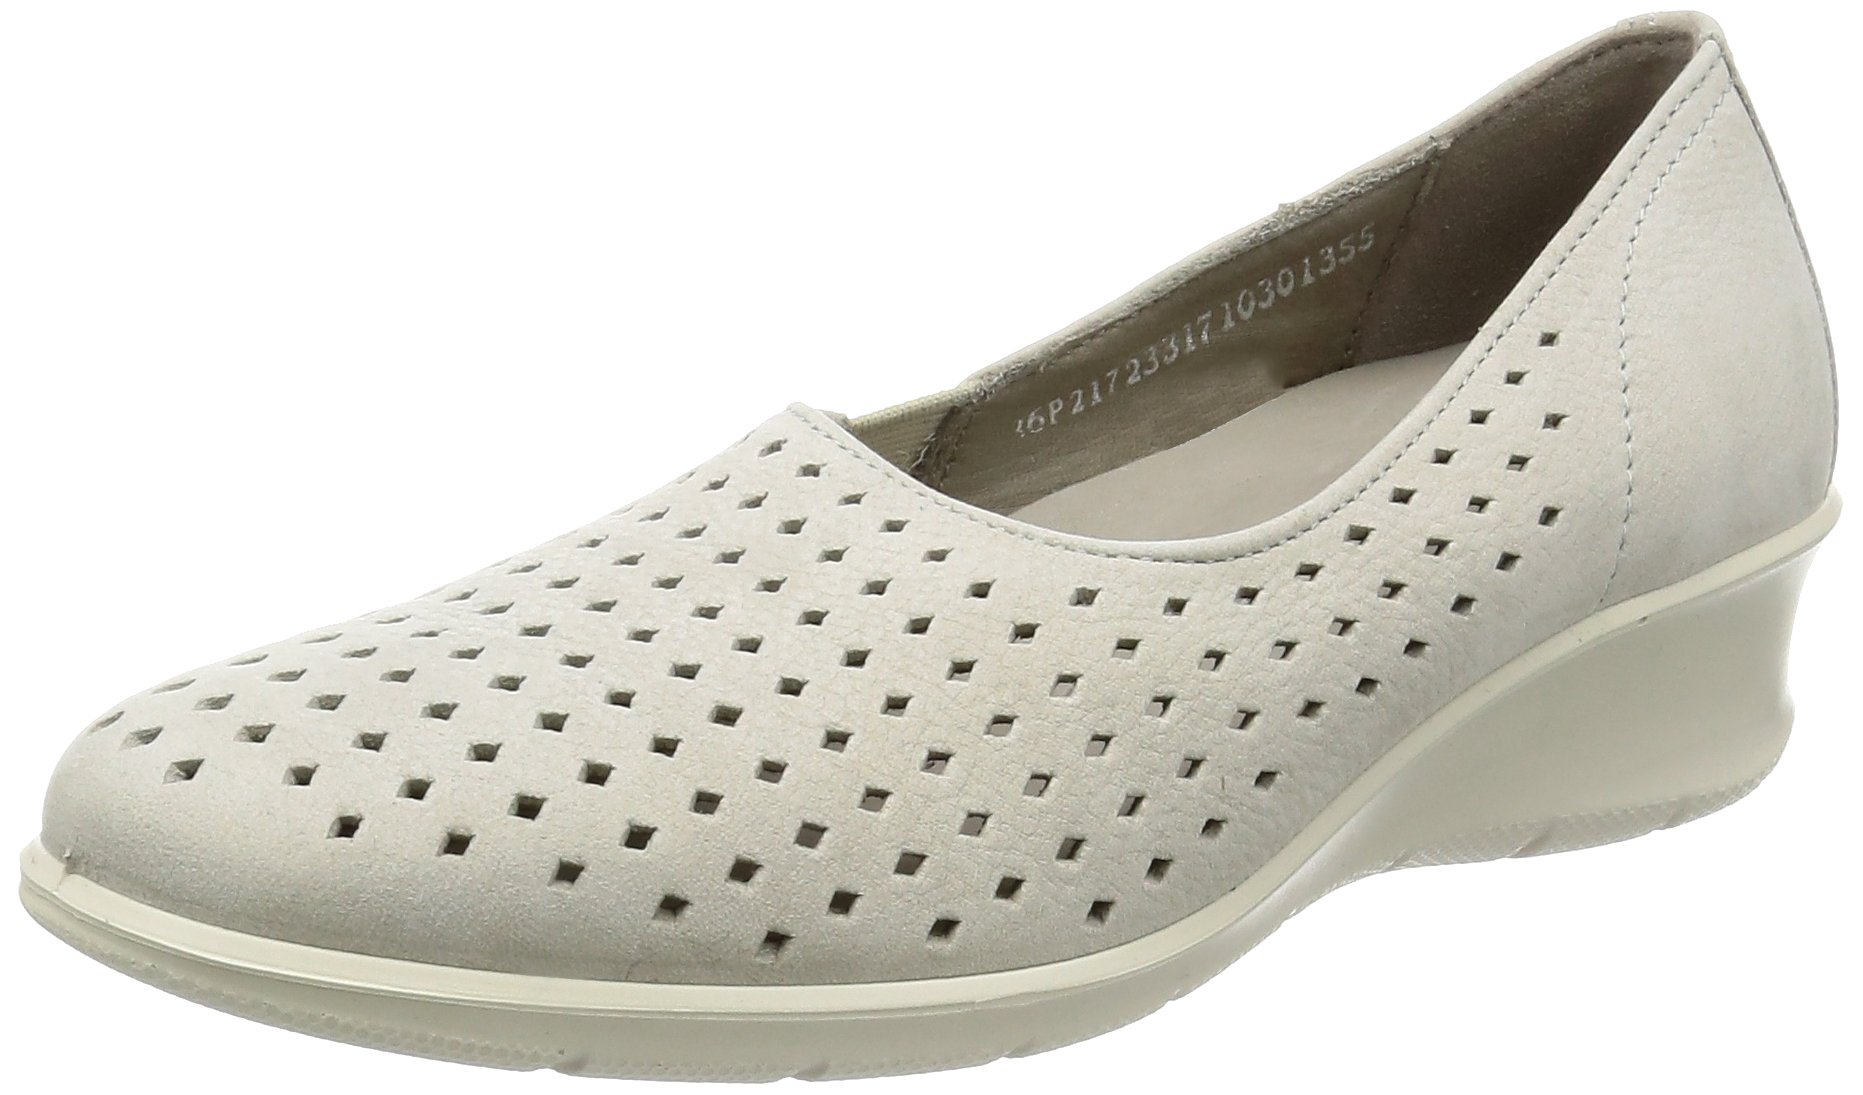 ECCO Women's Women's Felicia Summer Slip-on Loafer, Gravel, 39 EU/8-8.5 M US